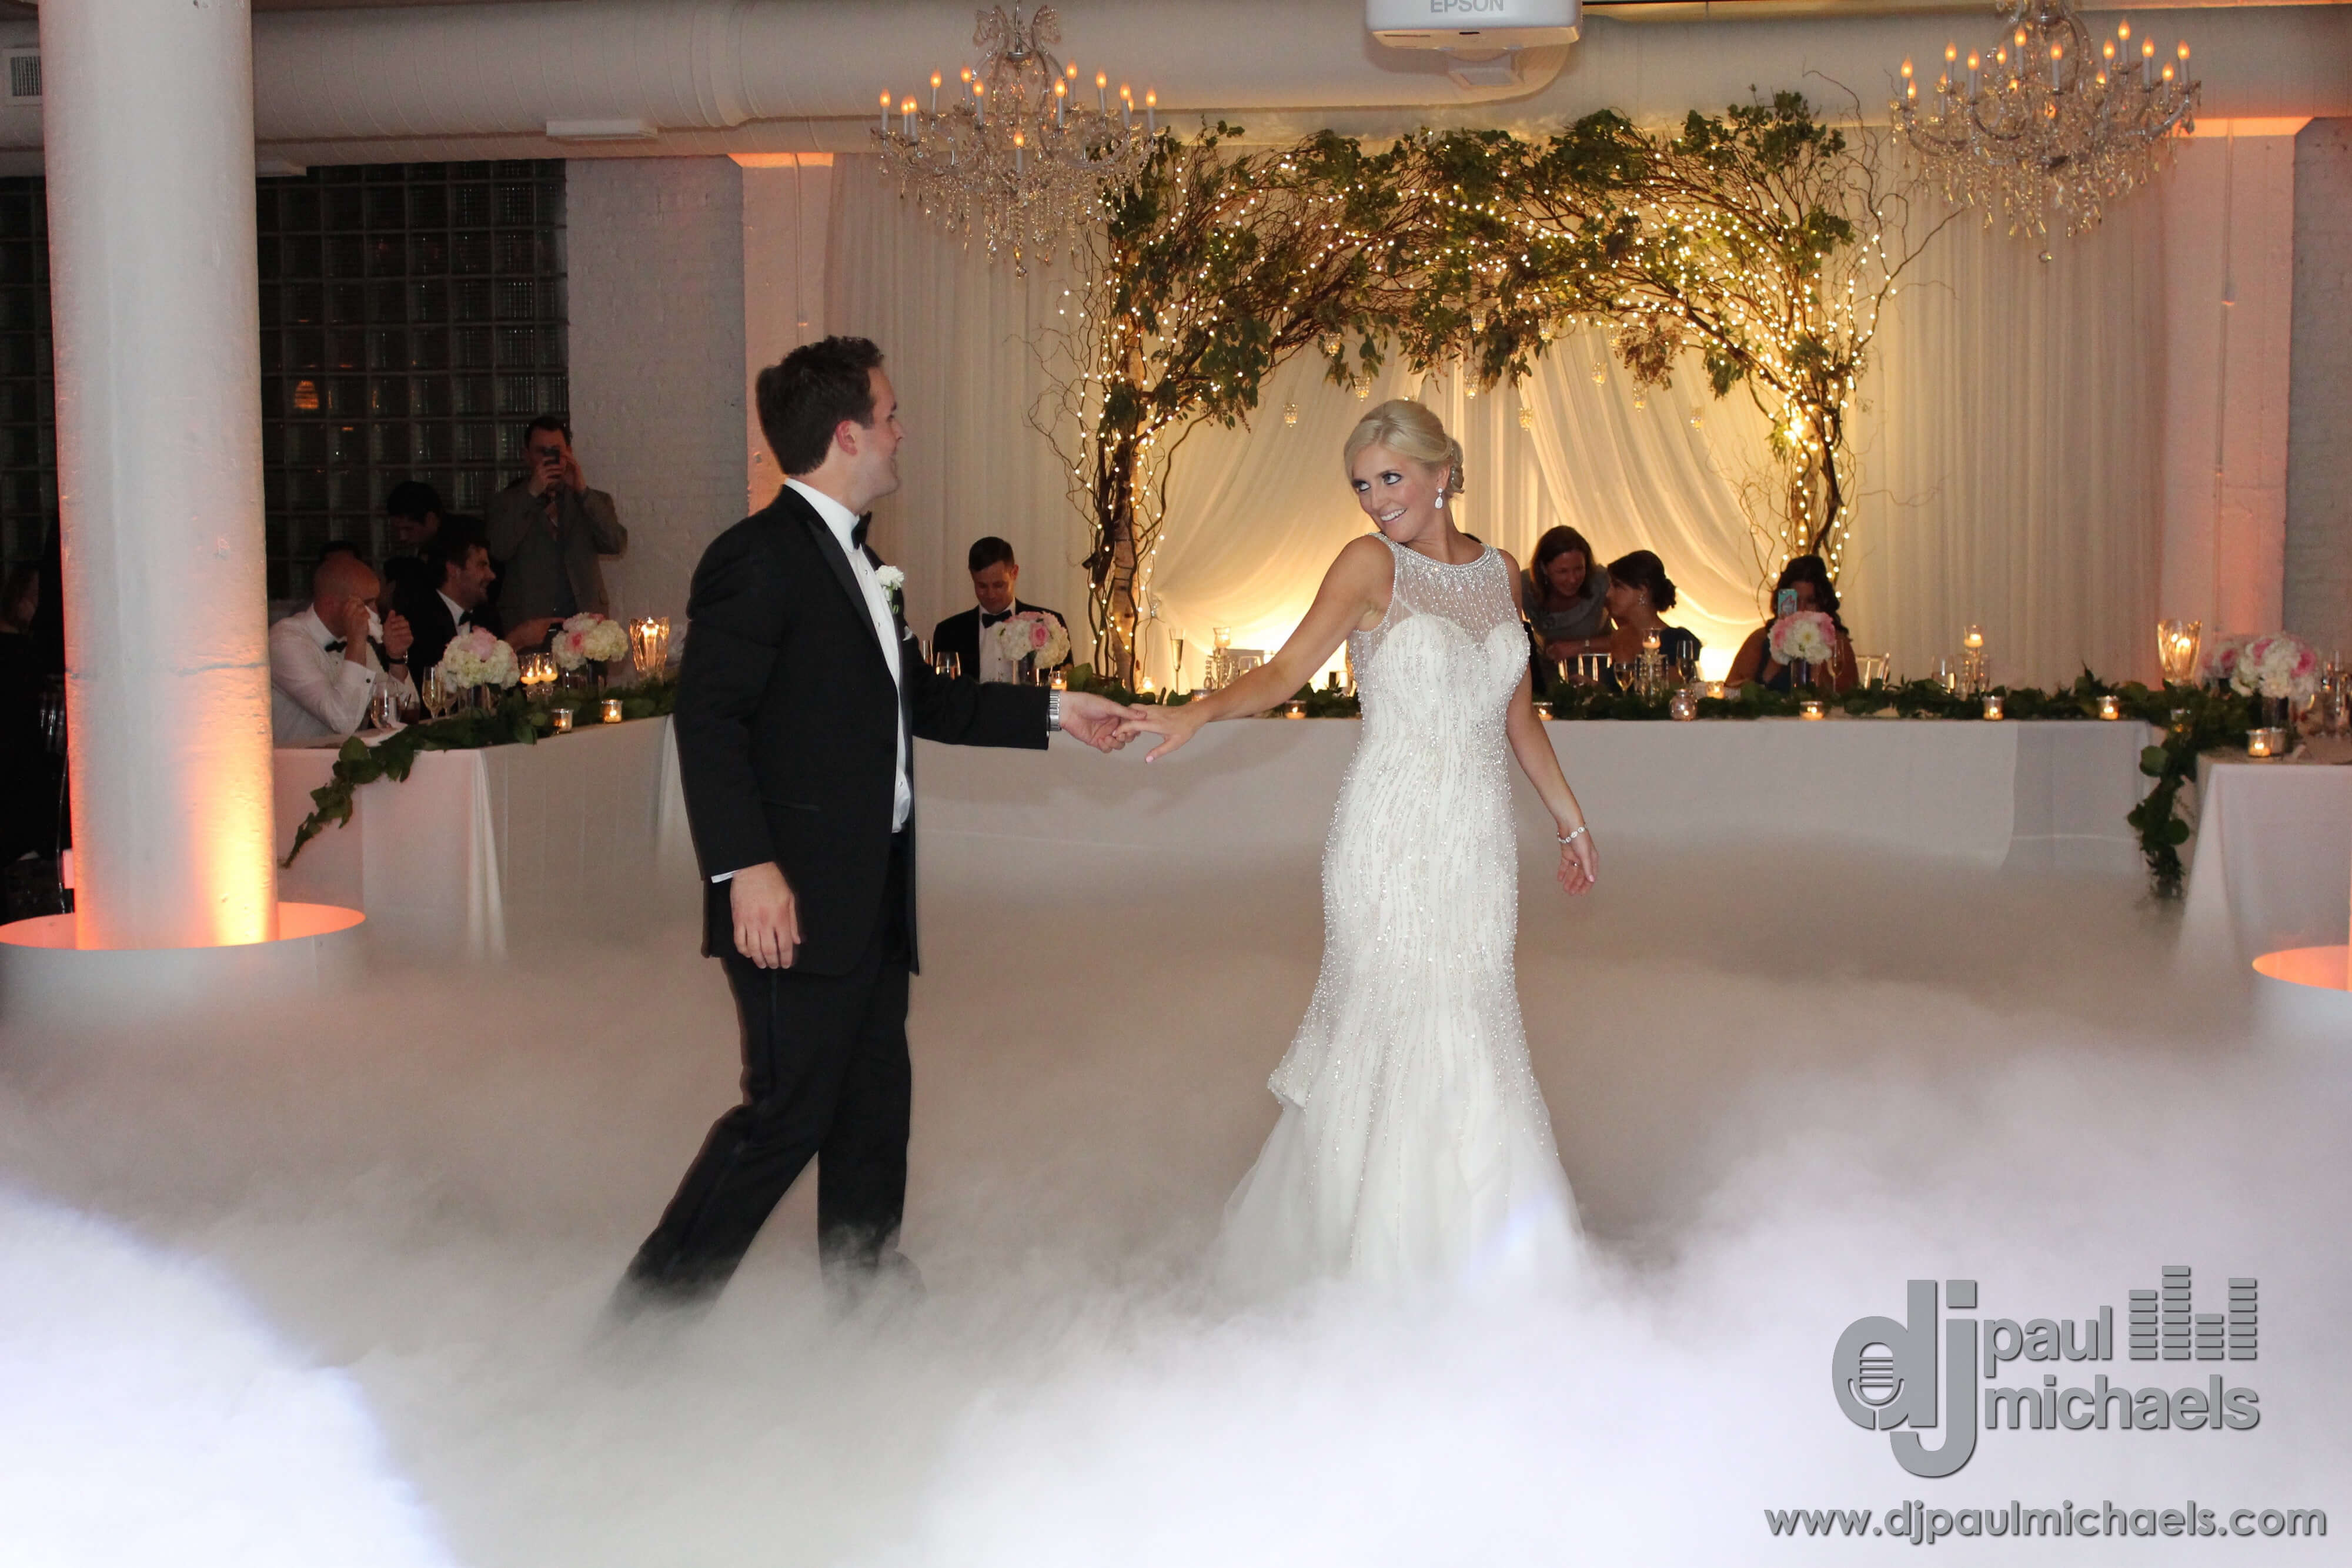 Heidi and Adam dancing on the Clouds